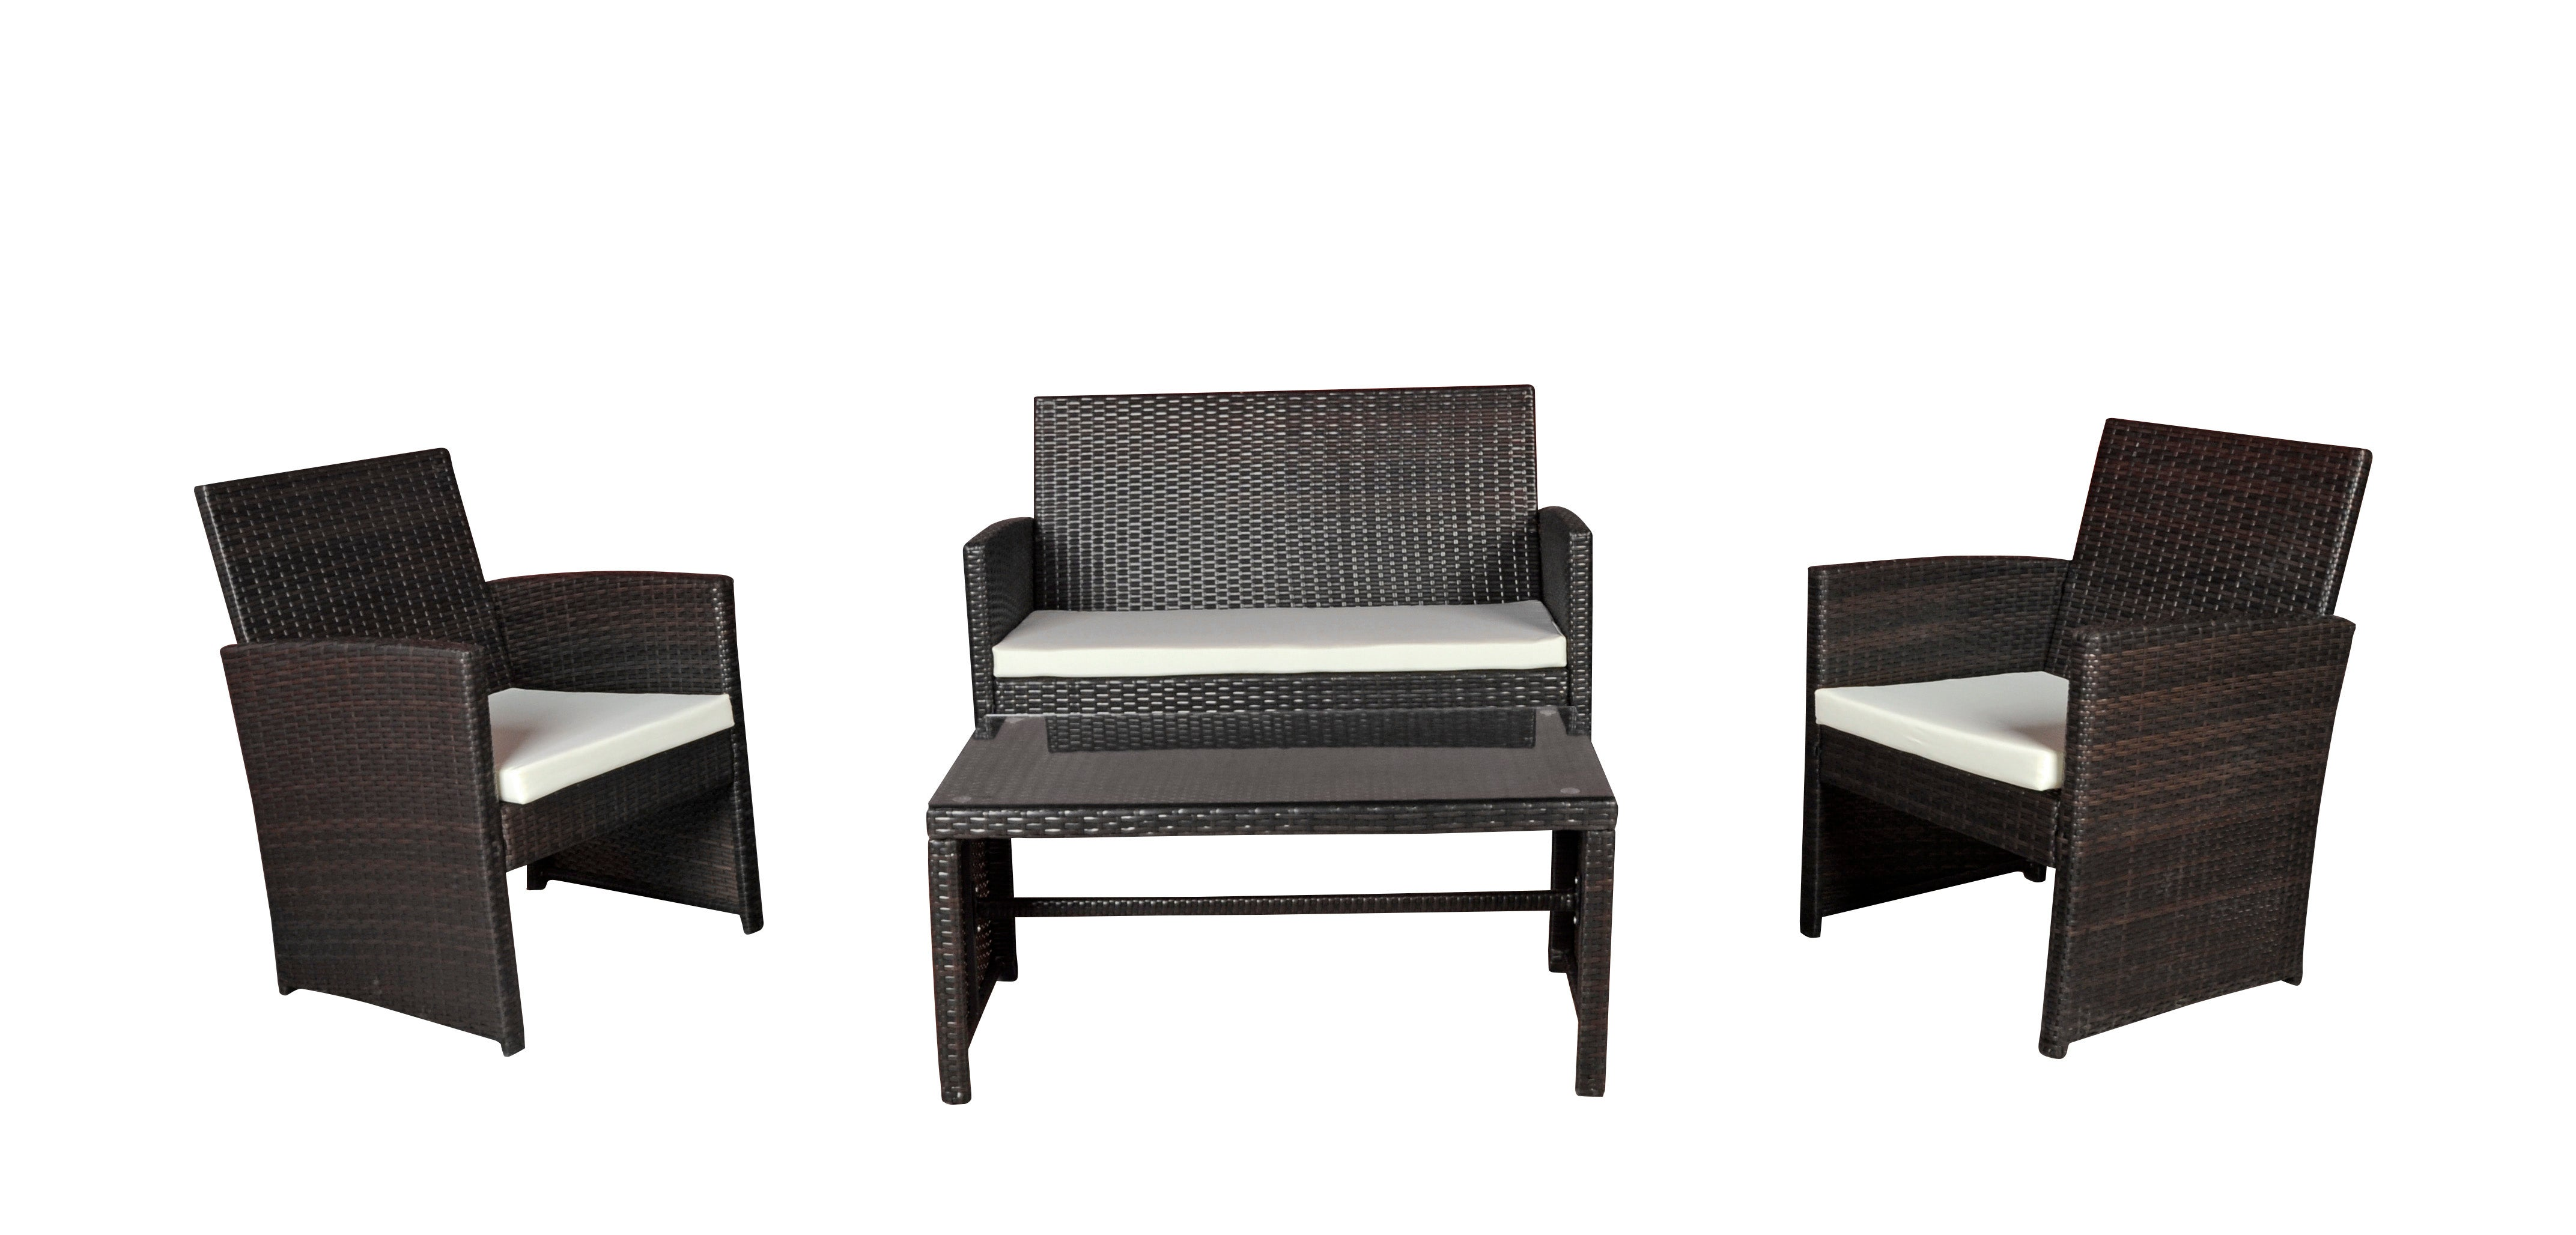 Outdoor Furniture Section